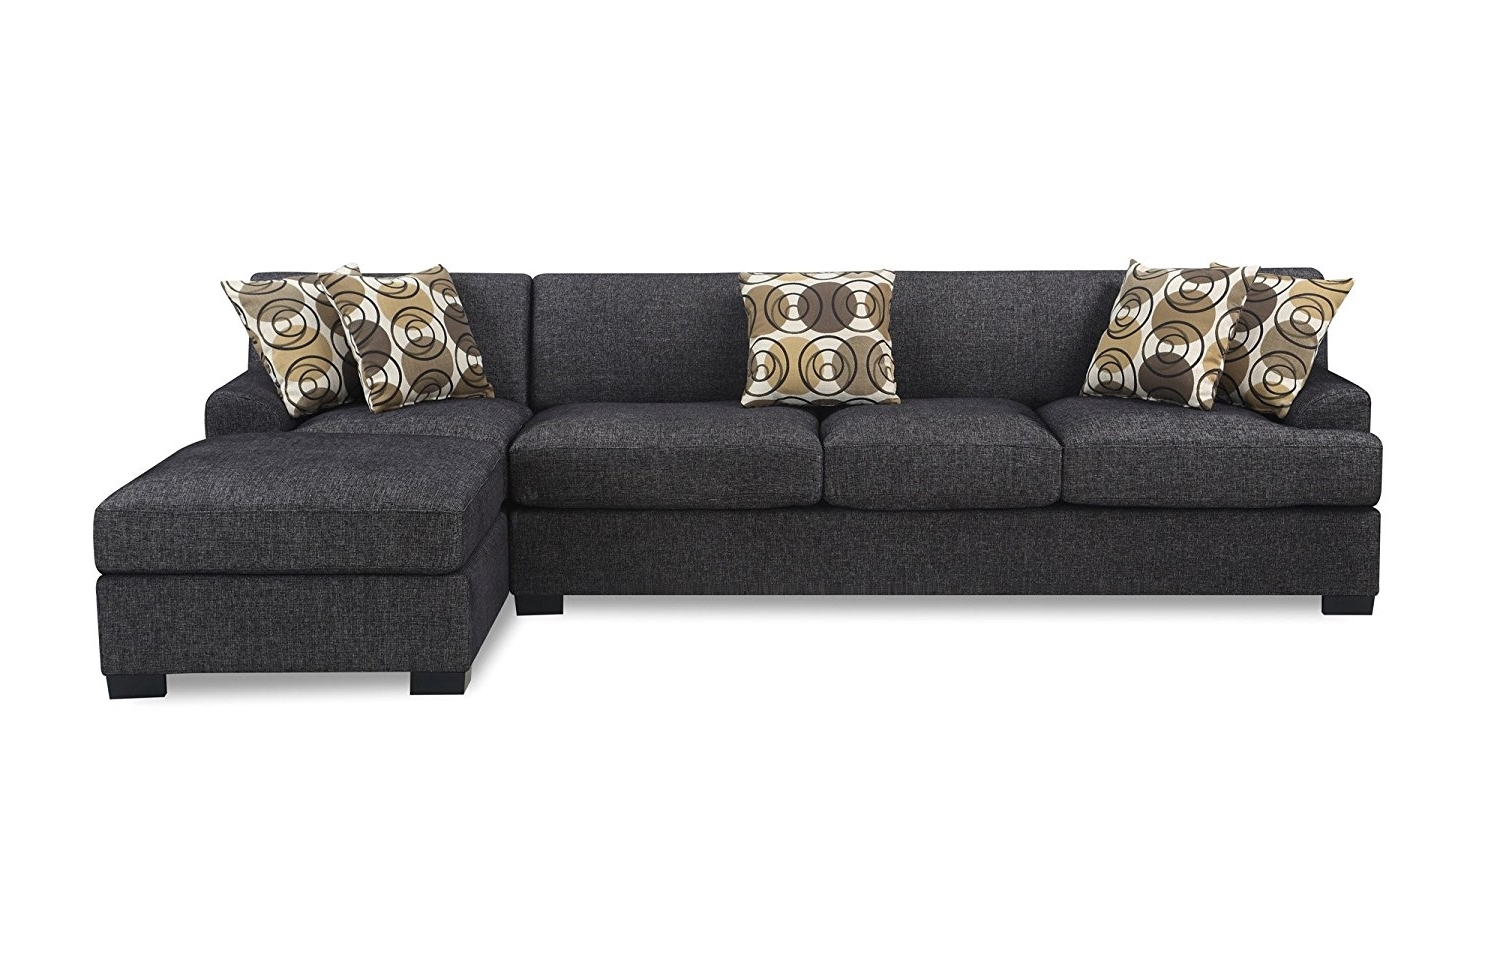 Well Liked Sectional Sofas Under 1500 In Amazon: Bobkona Benford 2 Piece Chaise Loveseat Sectional Sofa (View 11 of 15)